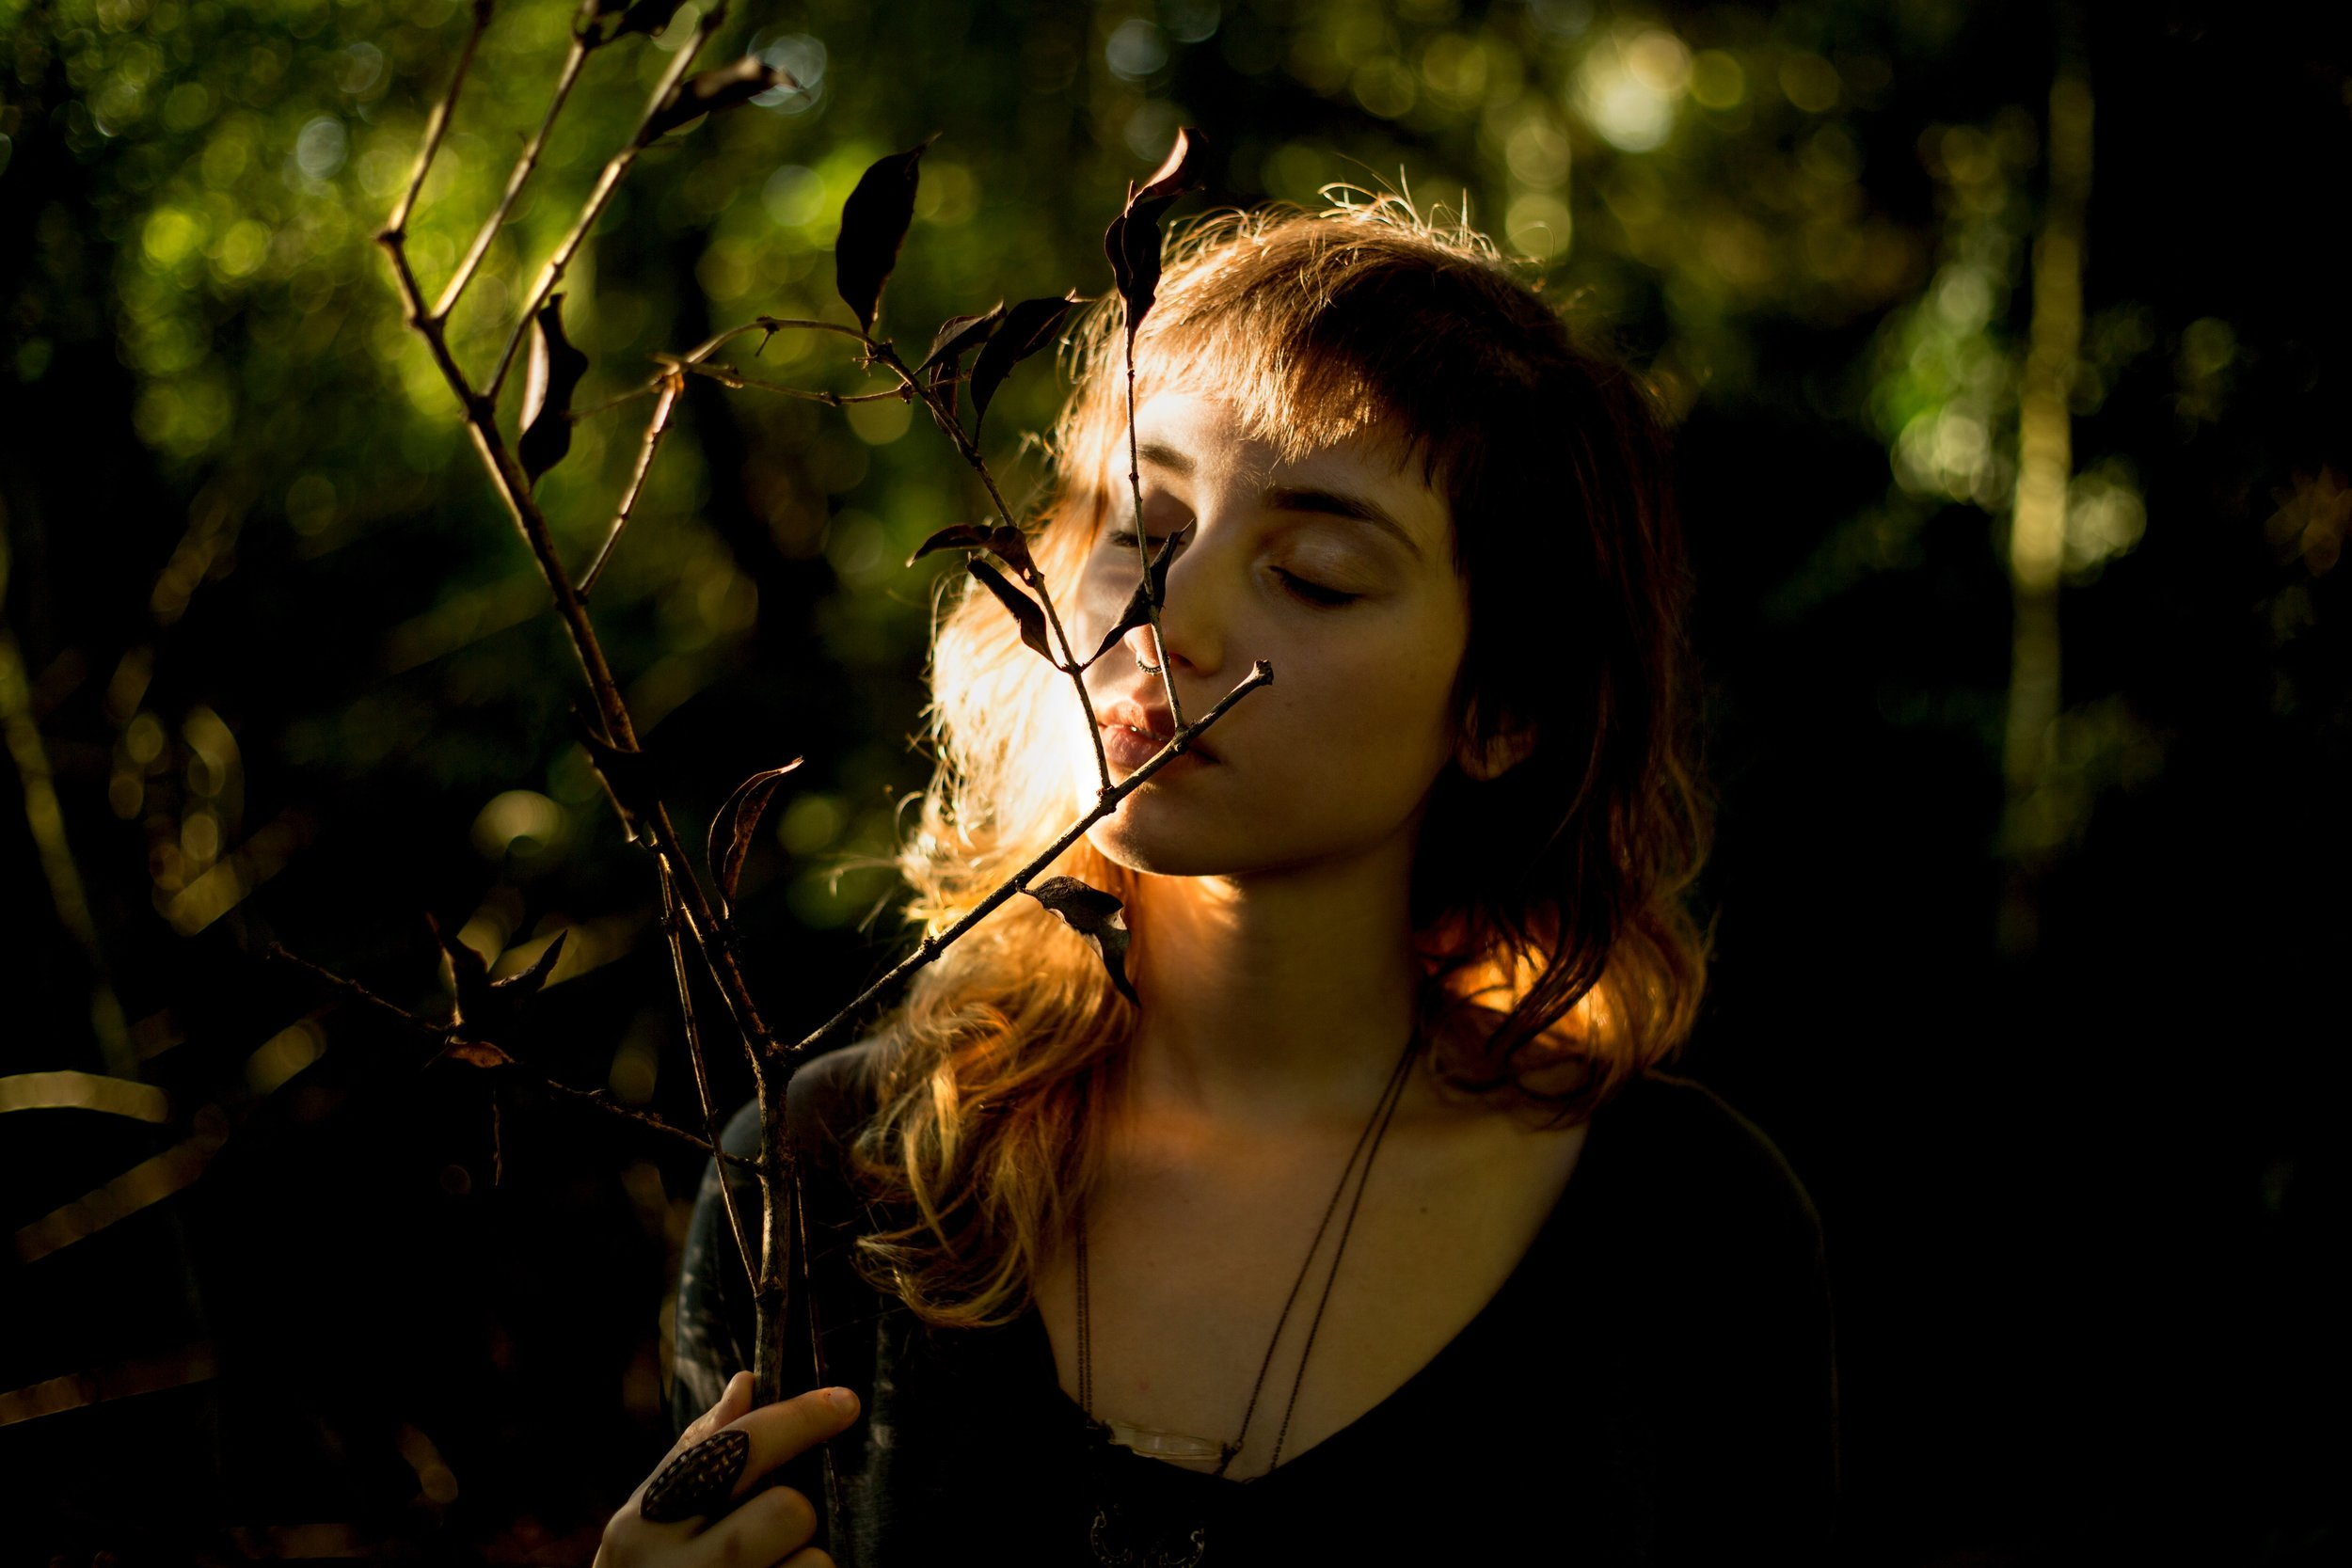 A young woman in a forest with her eyes closed, holding a branch in front of her face.